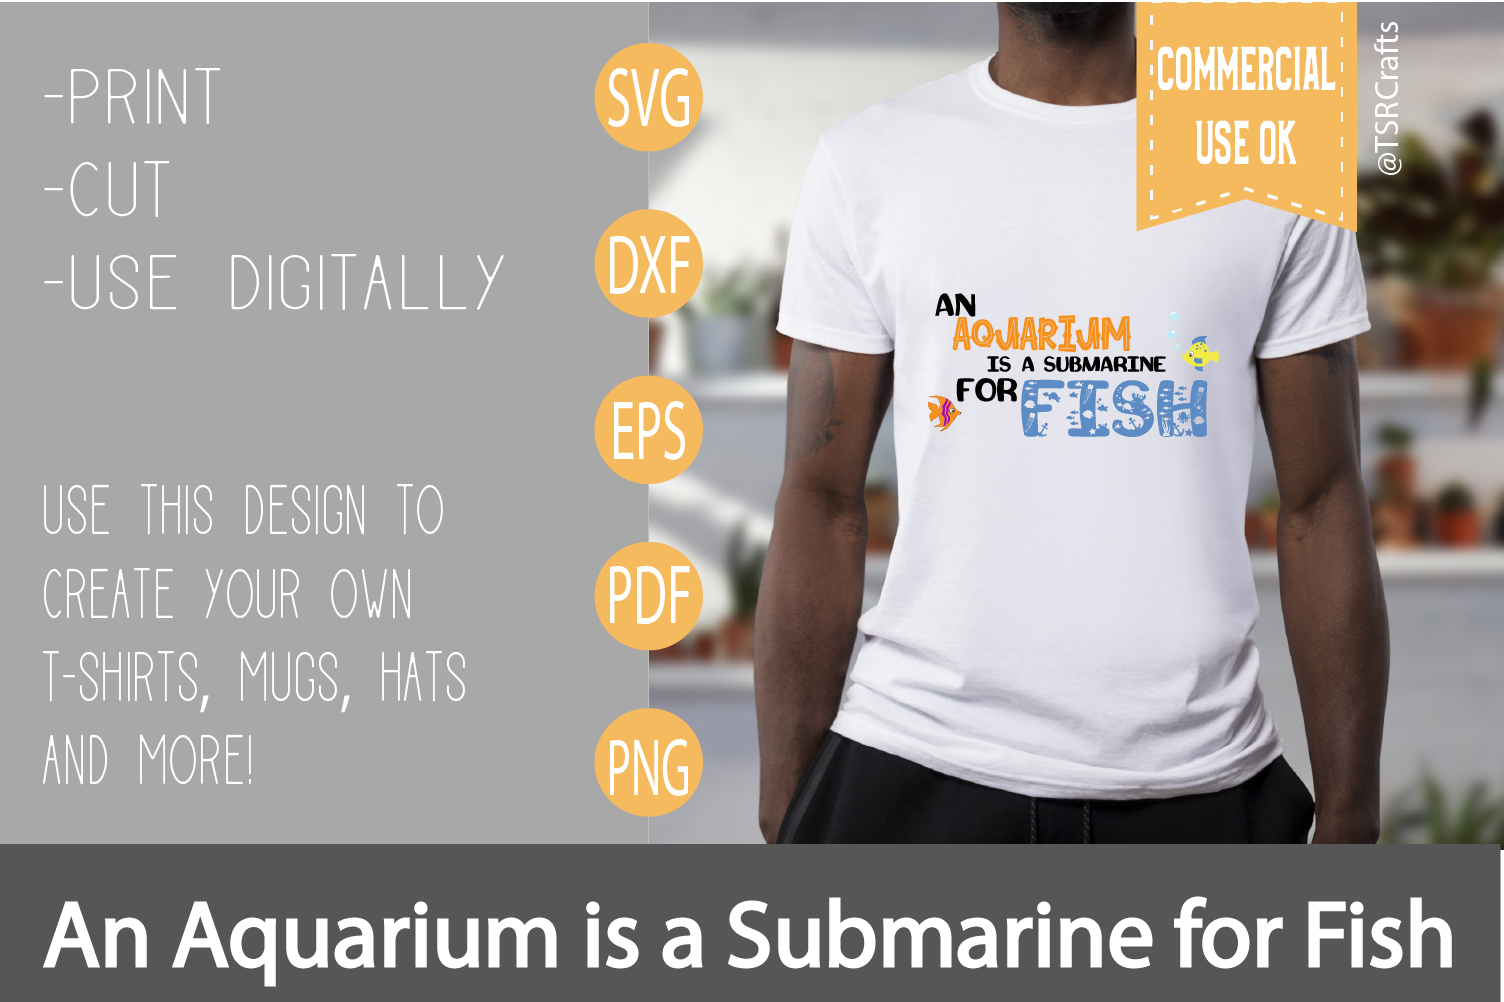 T shirt SVG - An Aquarium is a Submarine for Fish graphic example image 2